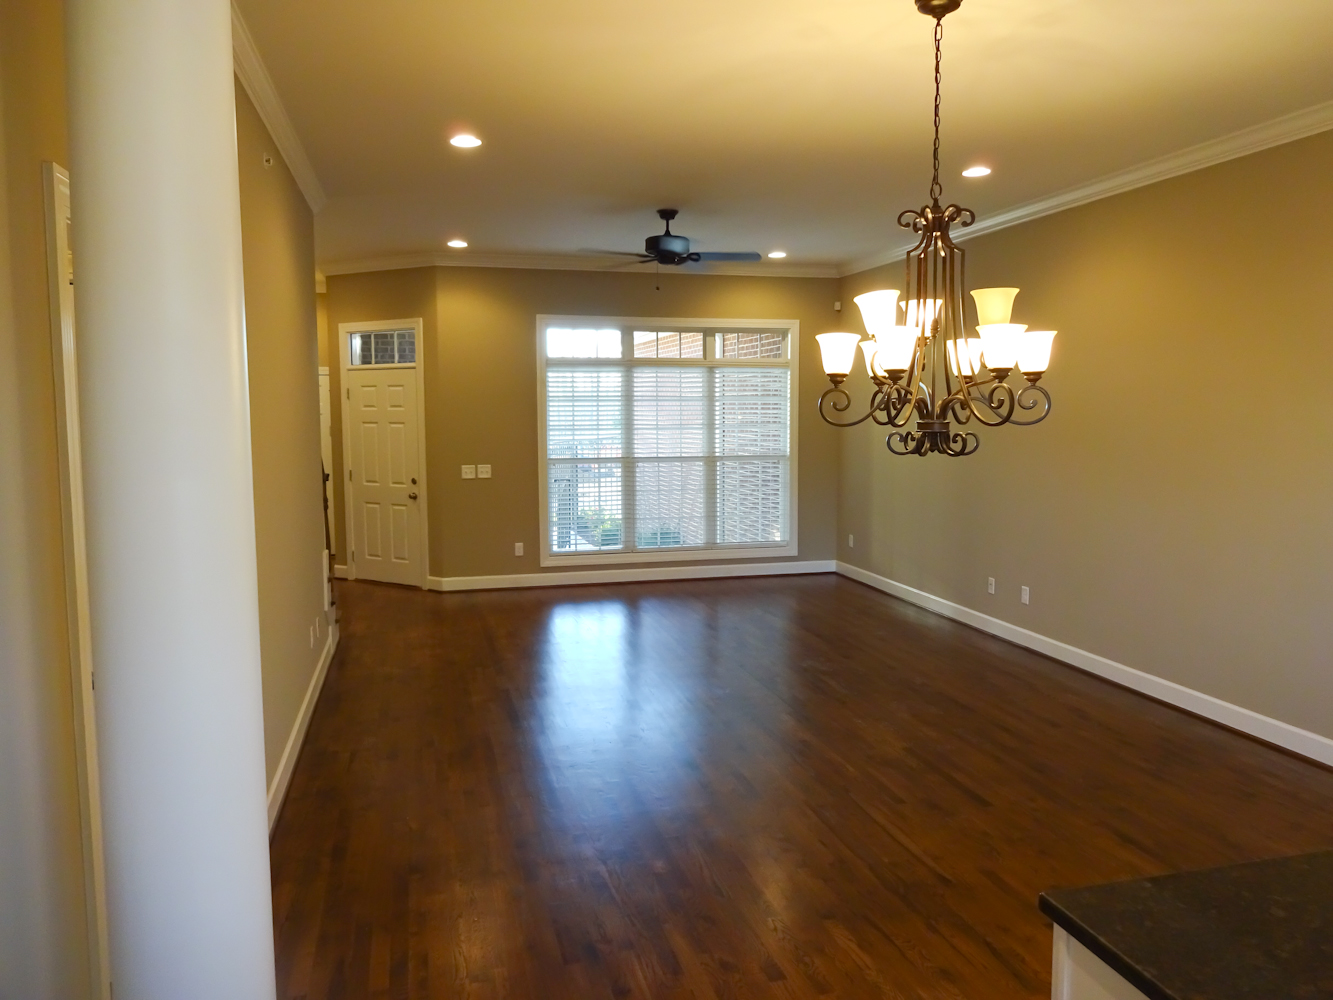 Town-Home-Rent-02035